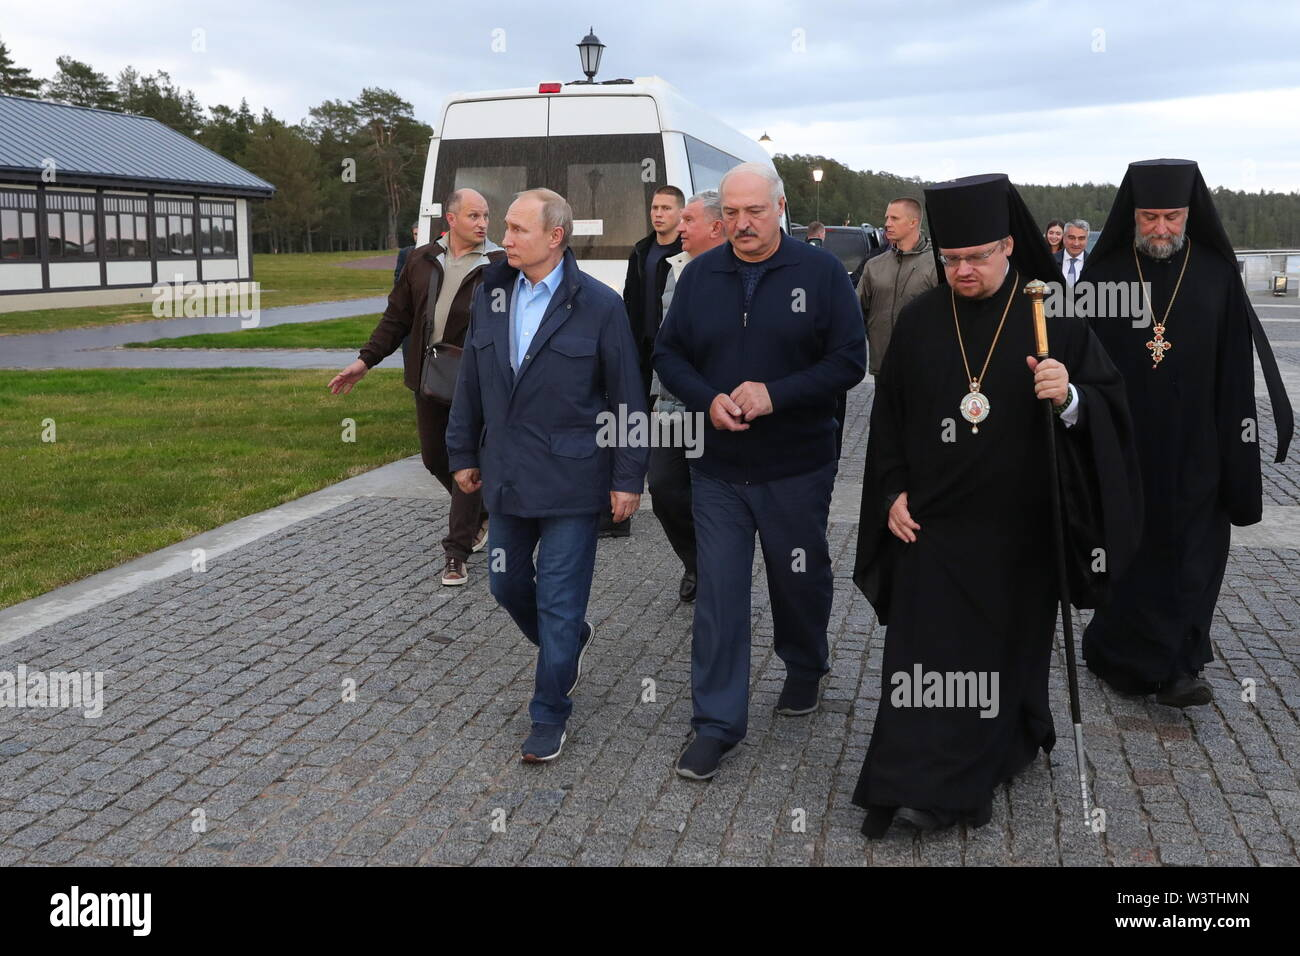 Russia. 17th July, 2019. LENINGRAD REGION, RUSSIA - JULY 17, 2019: Russia's President Vladimir Putin, Belarus' President Alexander Lukashenko, Bishop Ignatius of Vyborg and Priozersk, and father superior Alexander (L-R front) visit the Konevsky Monastery on Lake Ladoga. Mikhail Klimentyev/Russian Presidential Press and Information Office/TASS Credit: ITAR-TASS News Agency/Alamy Live News - Stock Image